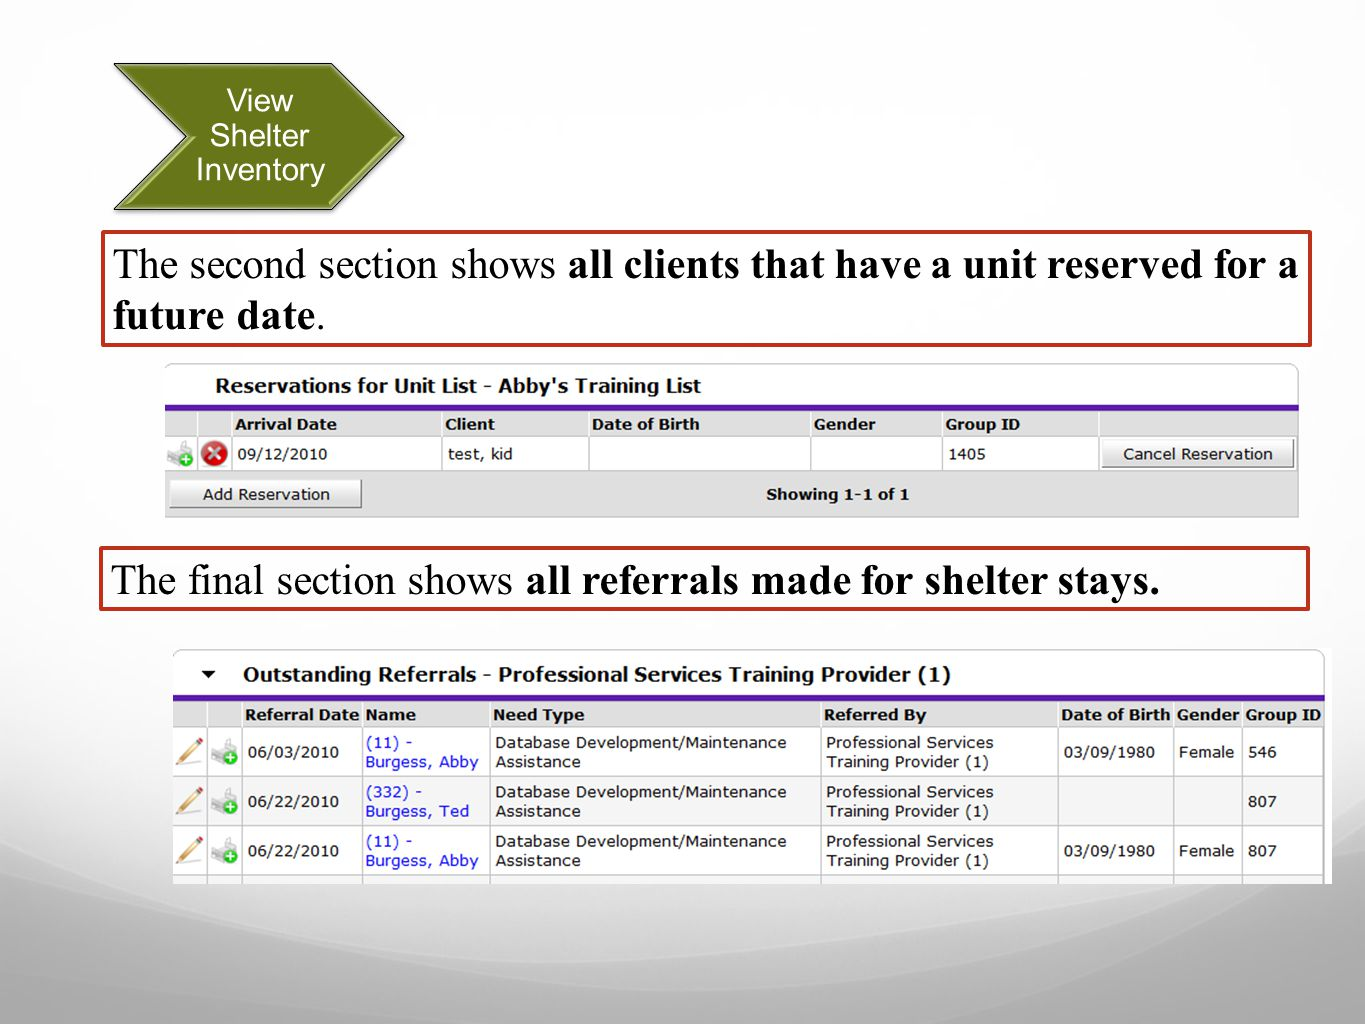 View Shelter Inventory